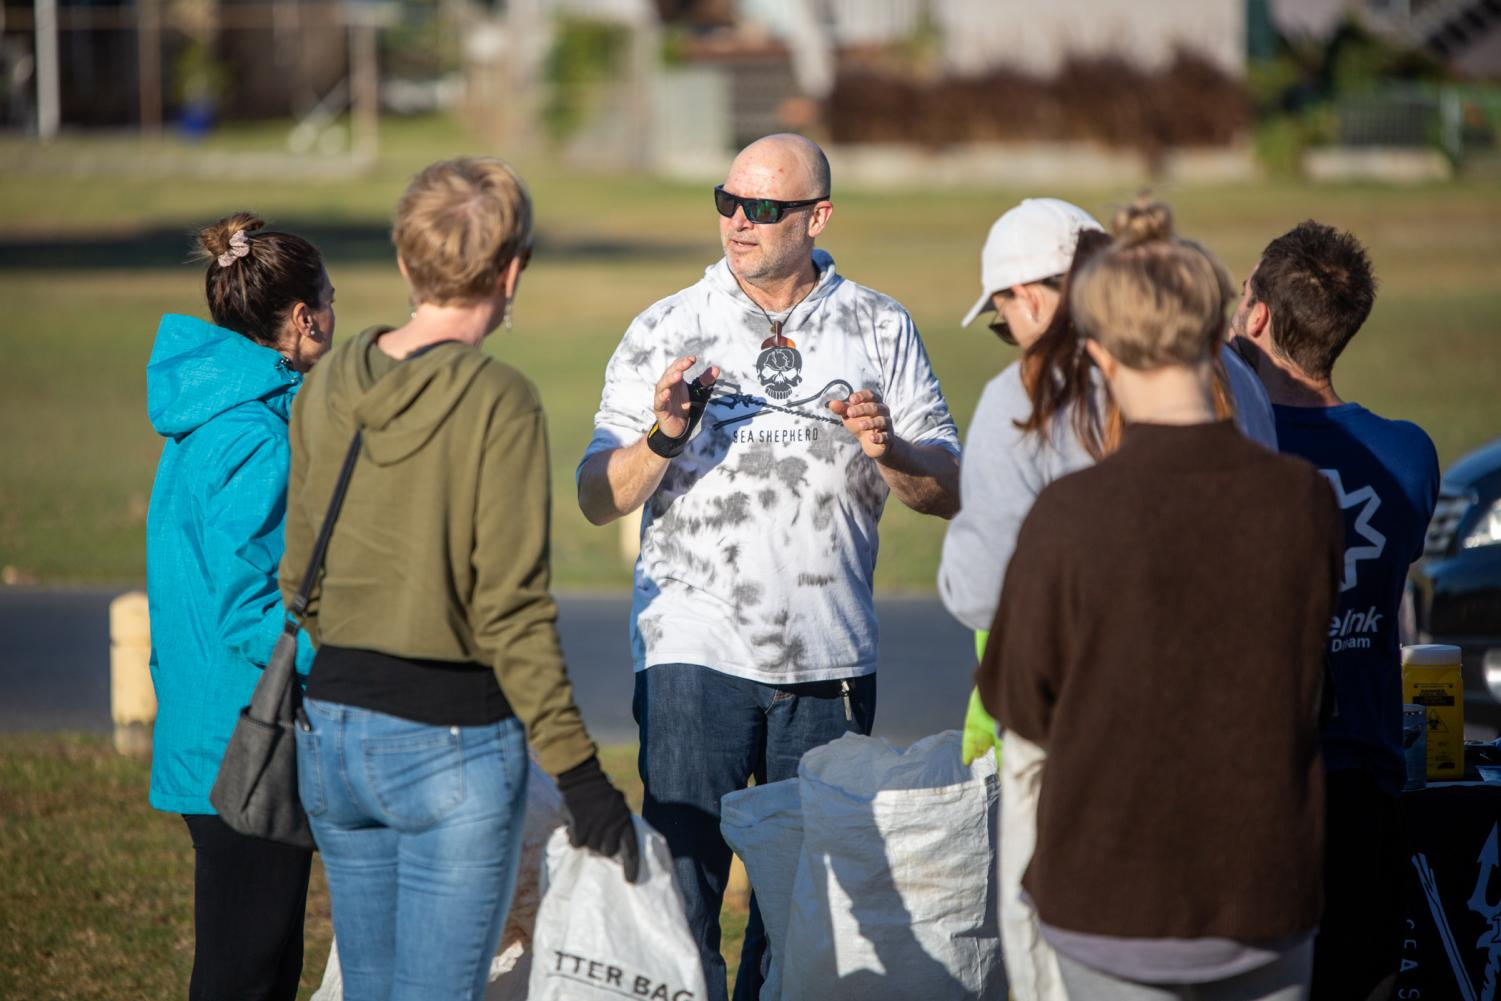 Sea Shepherd's Stuart Donald briefs a group of volunteers ahead of the Nudgee Beach clean-up